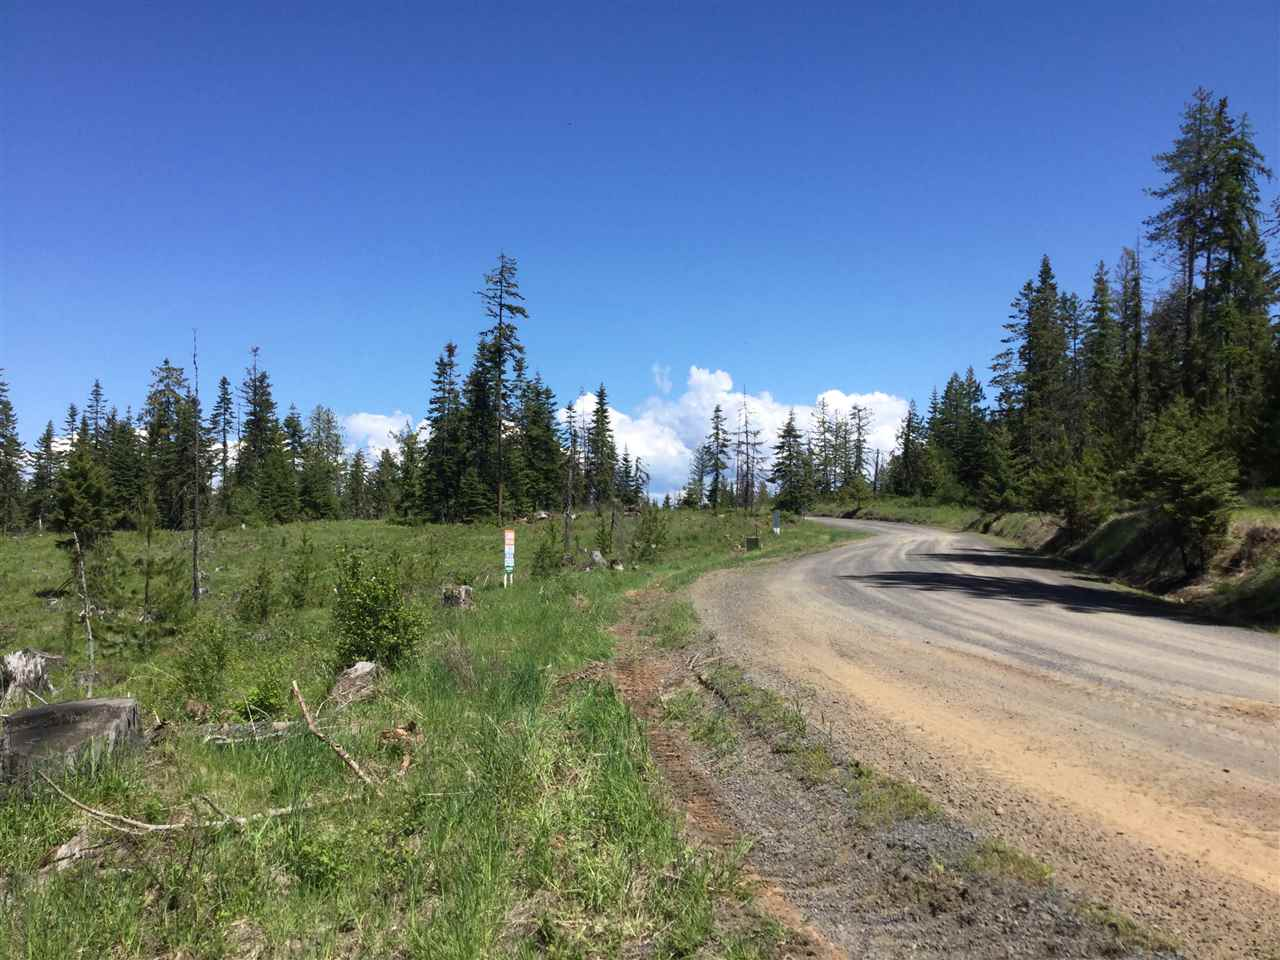 Recreational Property for Sale at TBD Bandmill A TBD Bandmill A Orofino, Idaho 83544